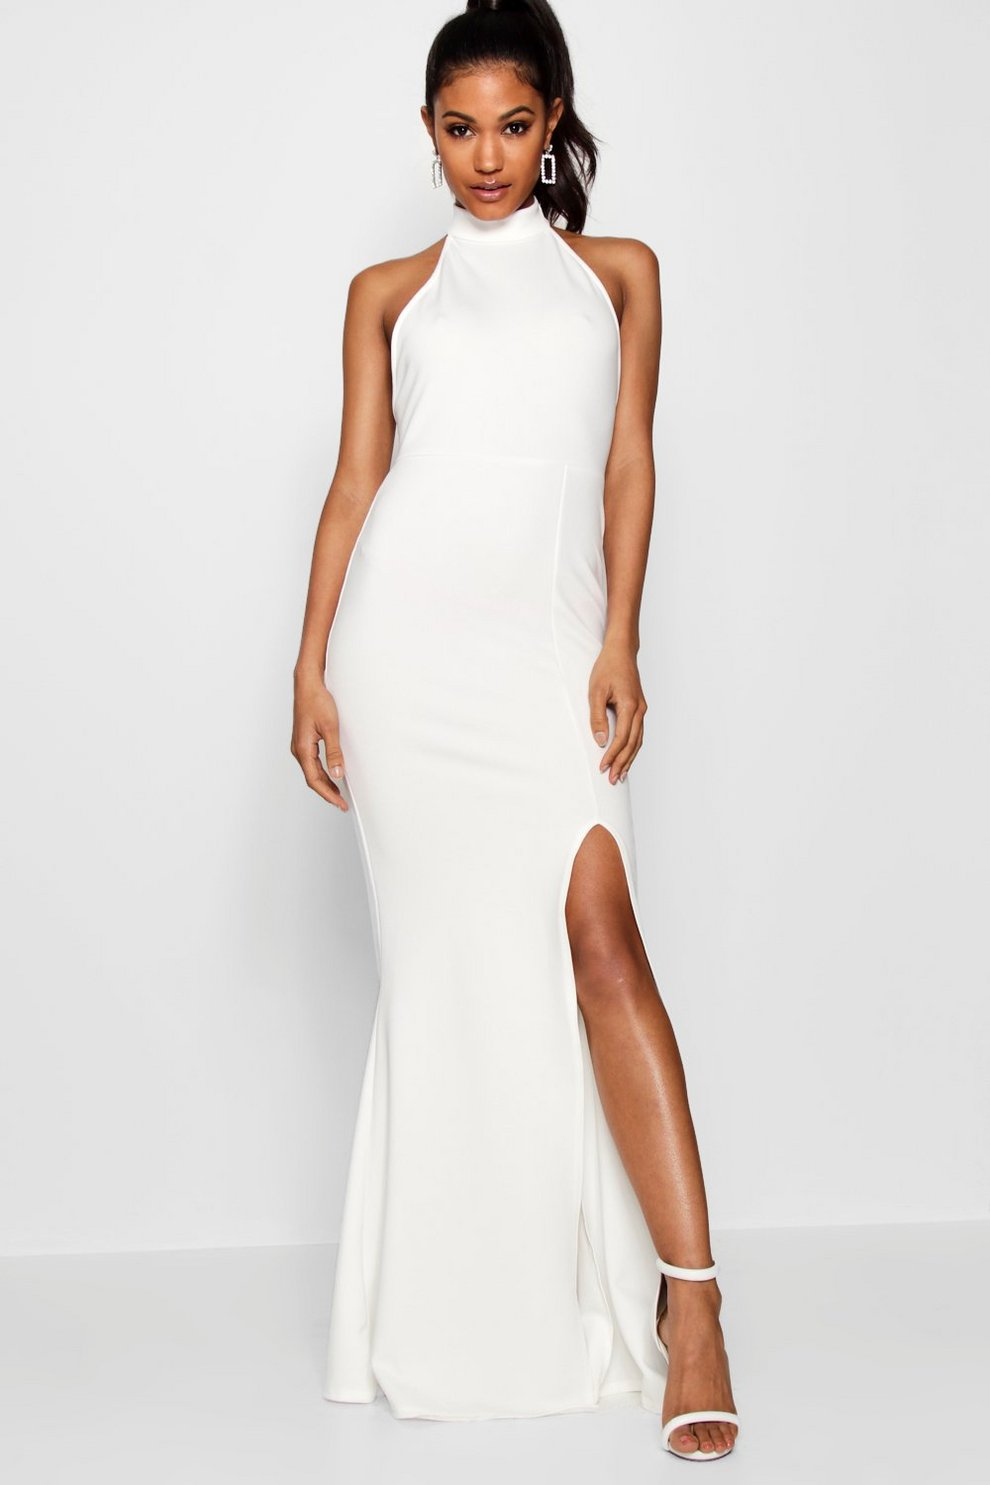 Boohoo has a FAB €24 version of Meghan\'s second wedding dress | Her.ie